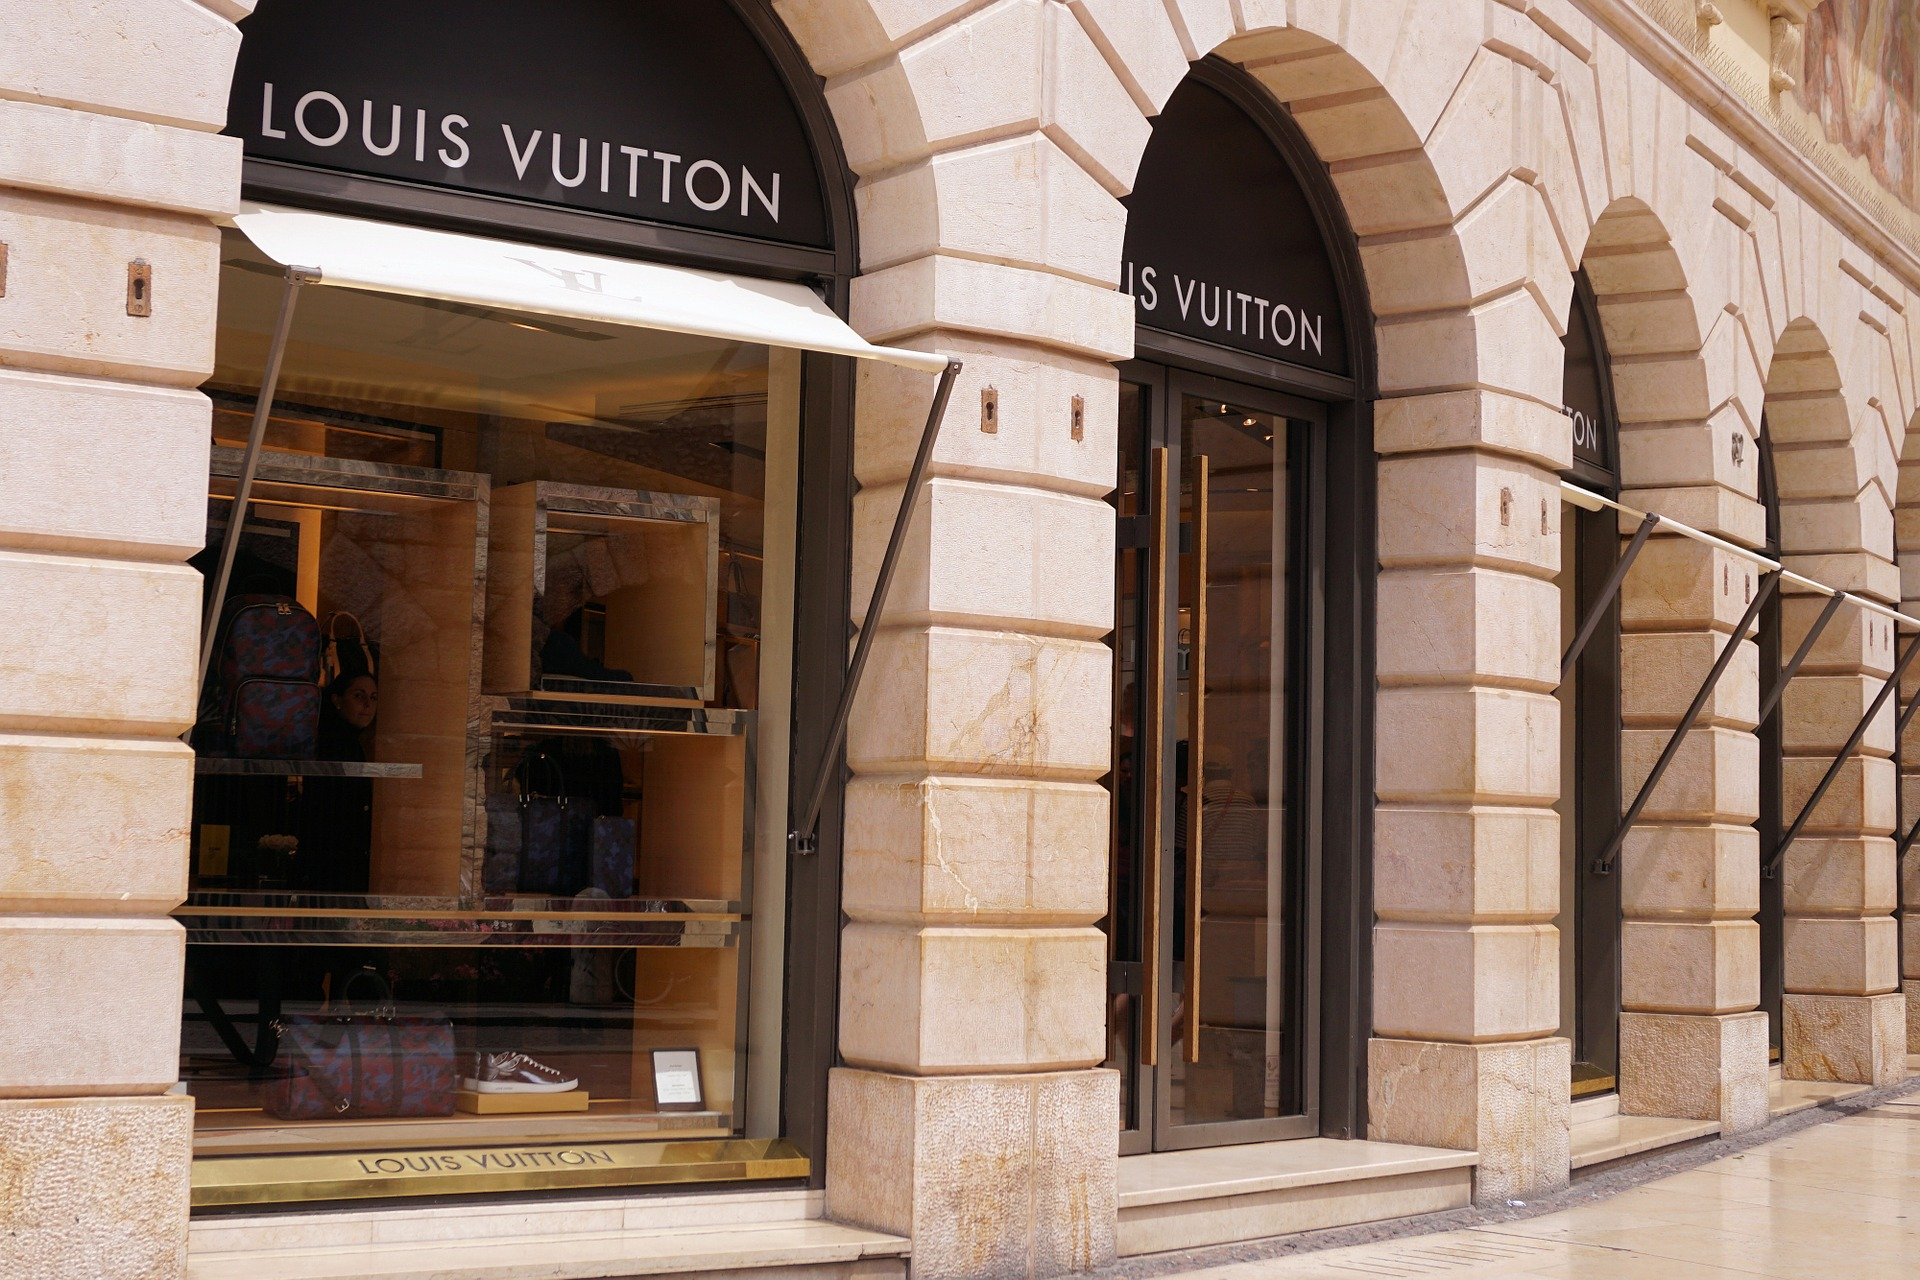 How to spot fake Louis Vuitton items